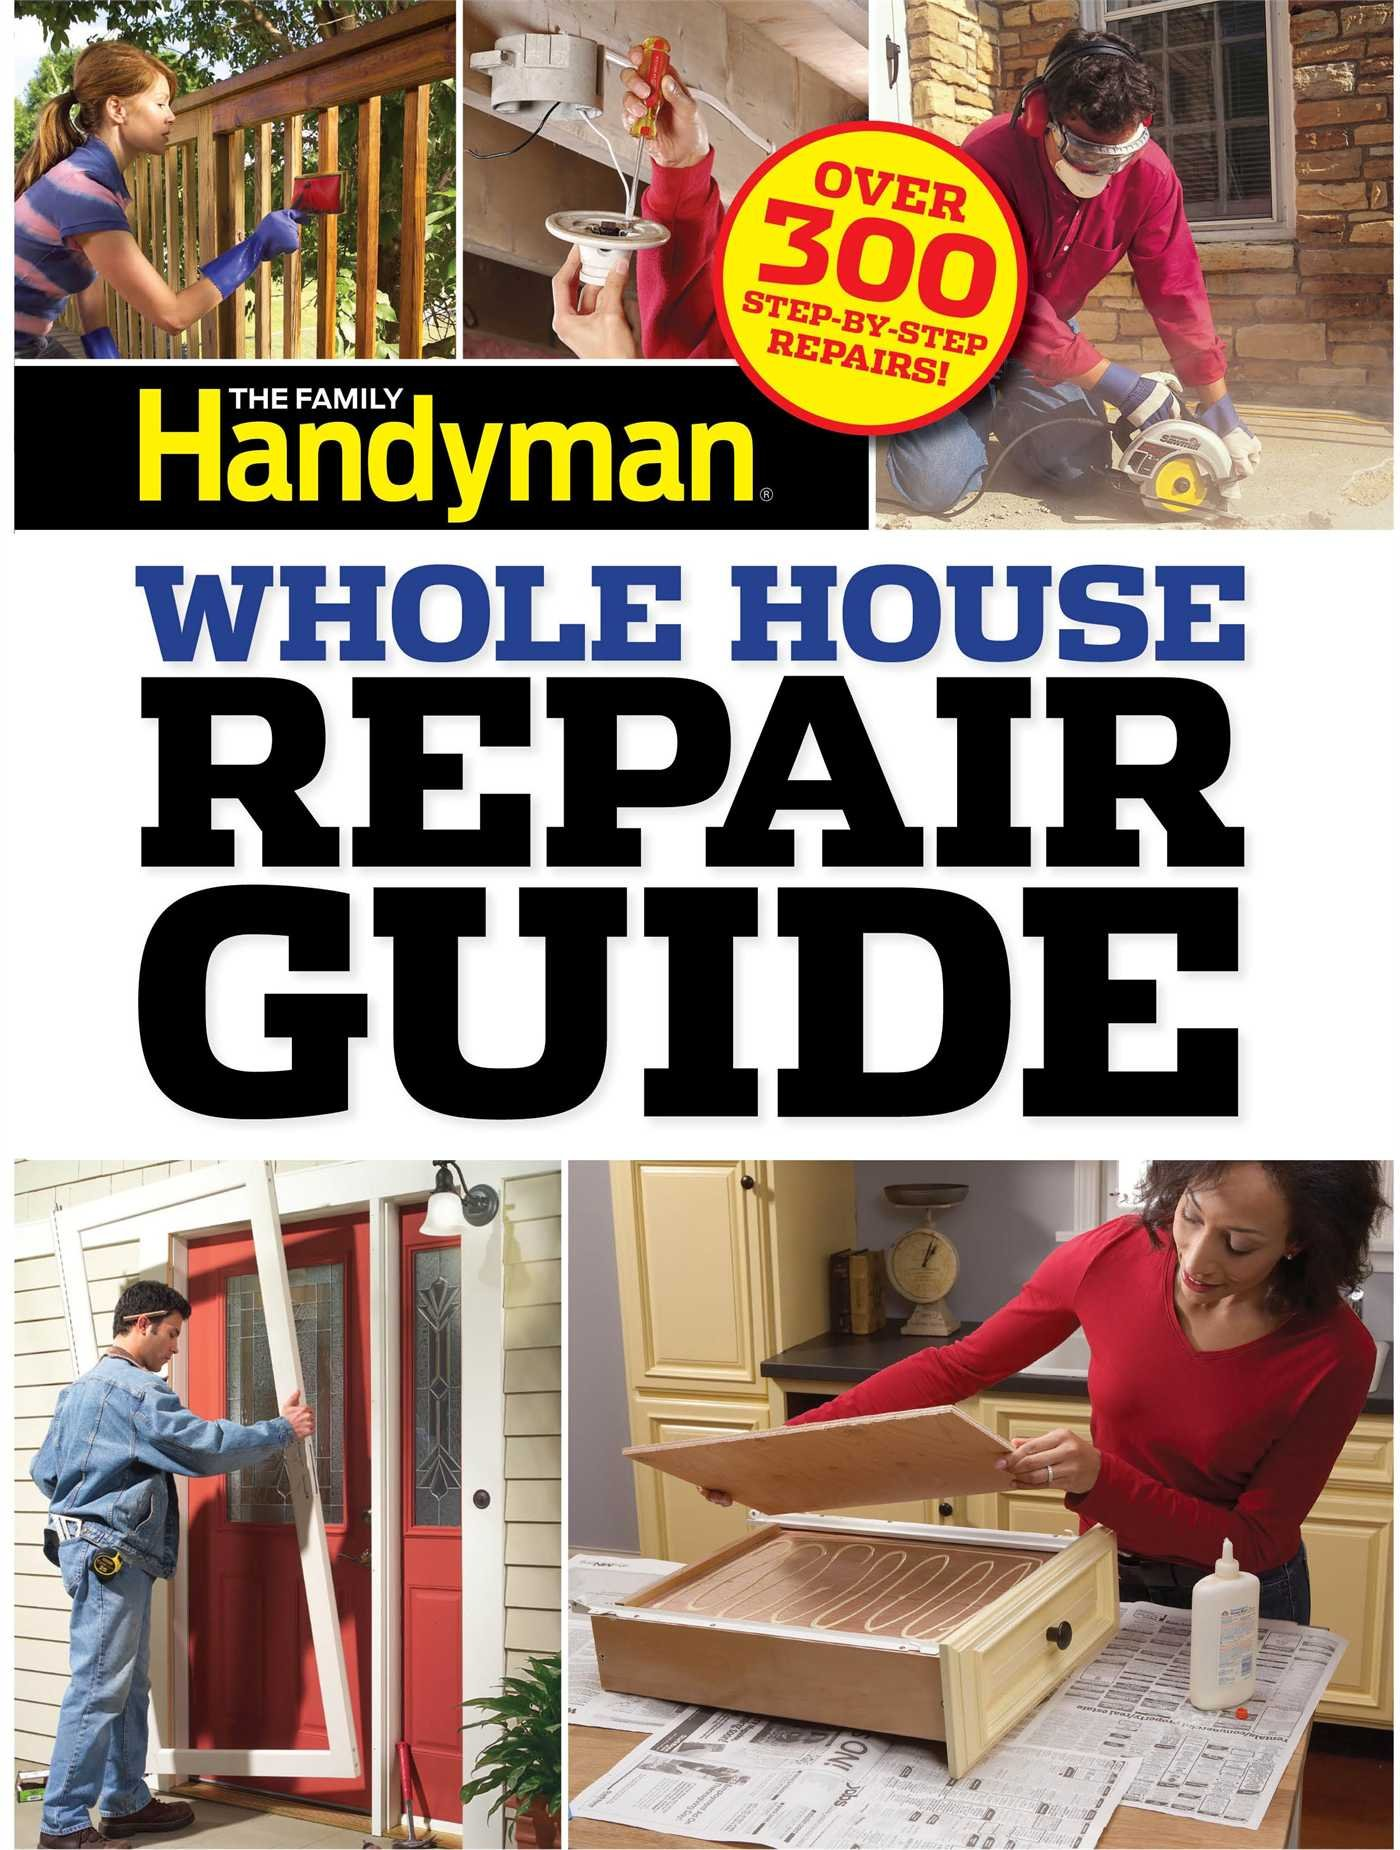 family handyman whole house repair guide over 300 step by step rh amazon com KitchenAid Dishwasher Repair Guide Online Repair Guide